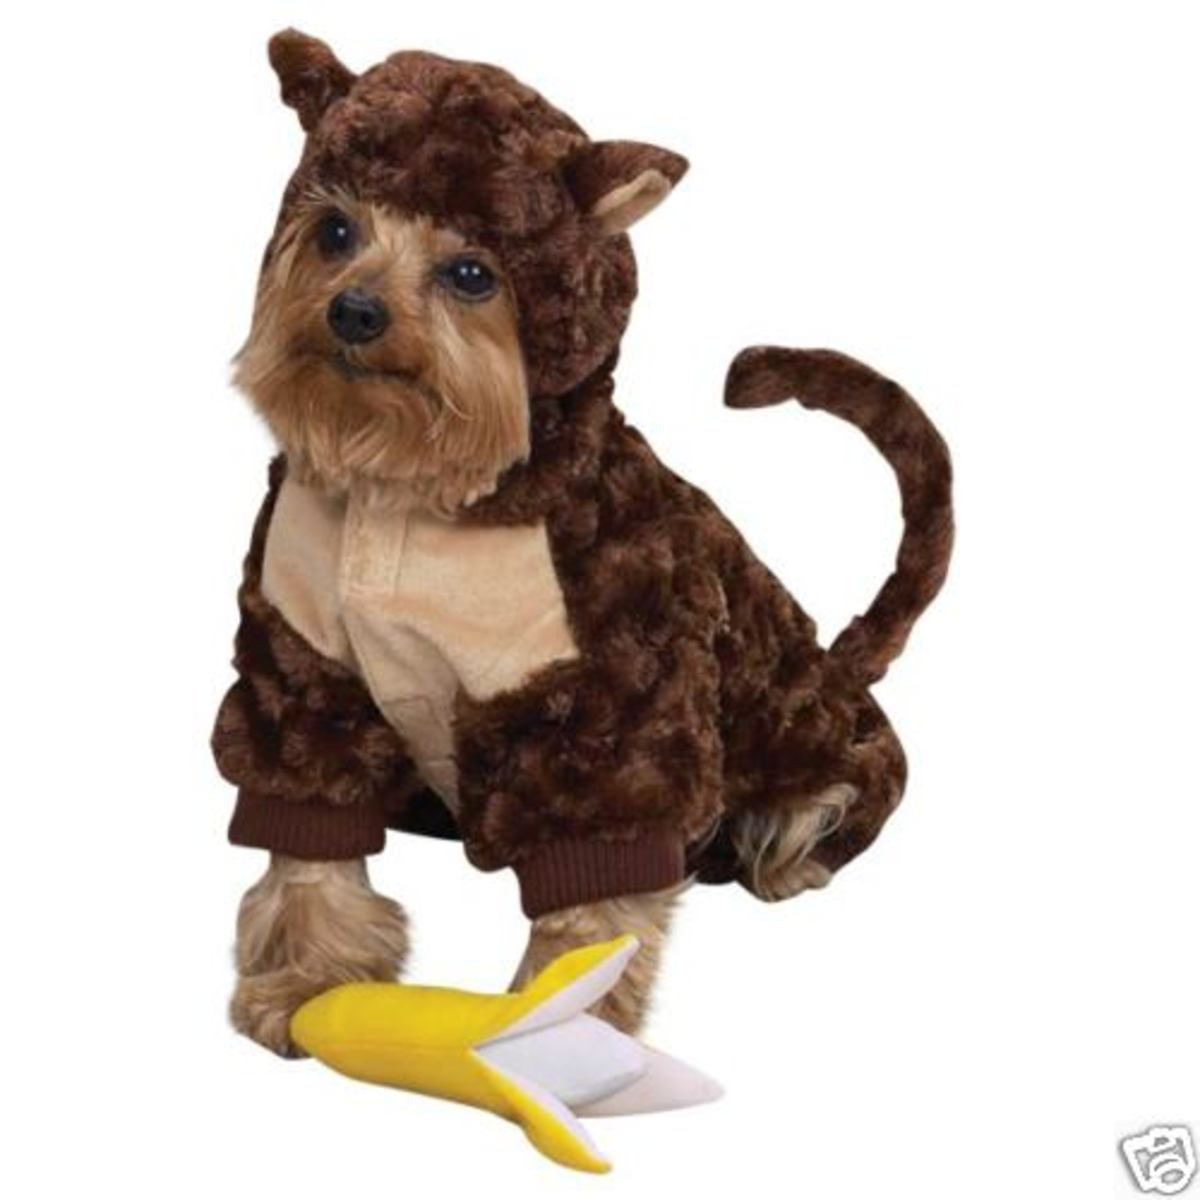 Dog Monkey costume is the most adorable for Halloween 2011. Even comes with a banana squeaky toy for added fun!